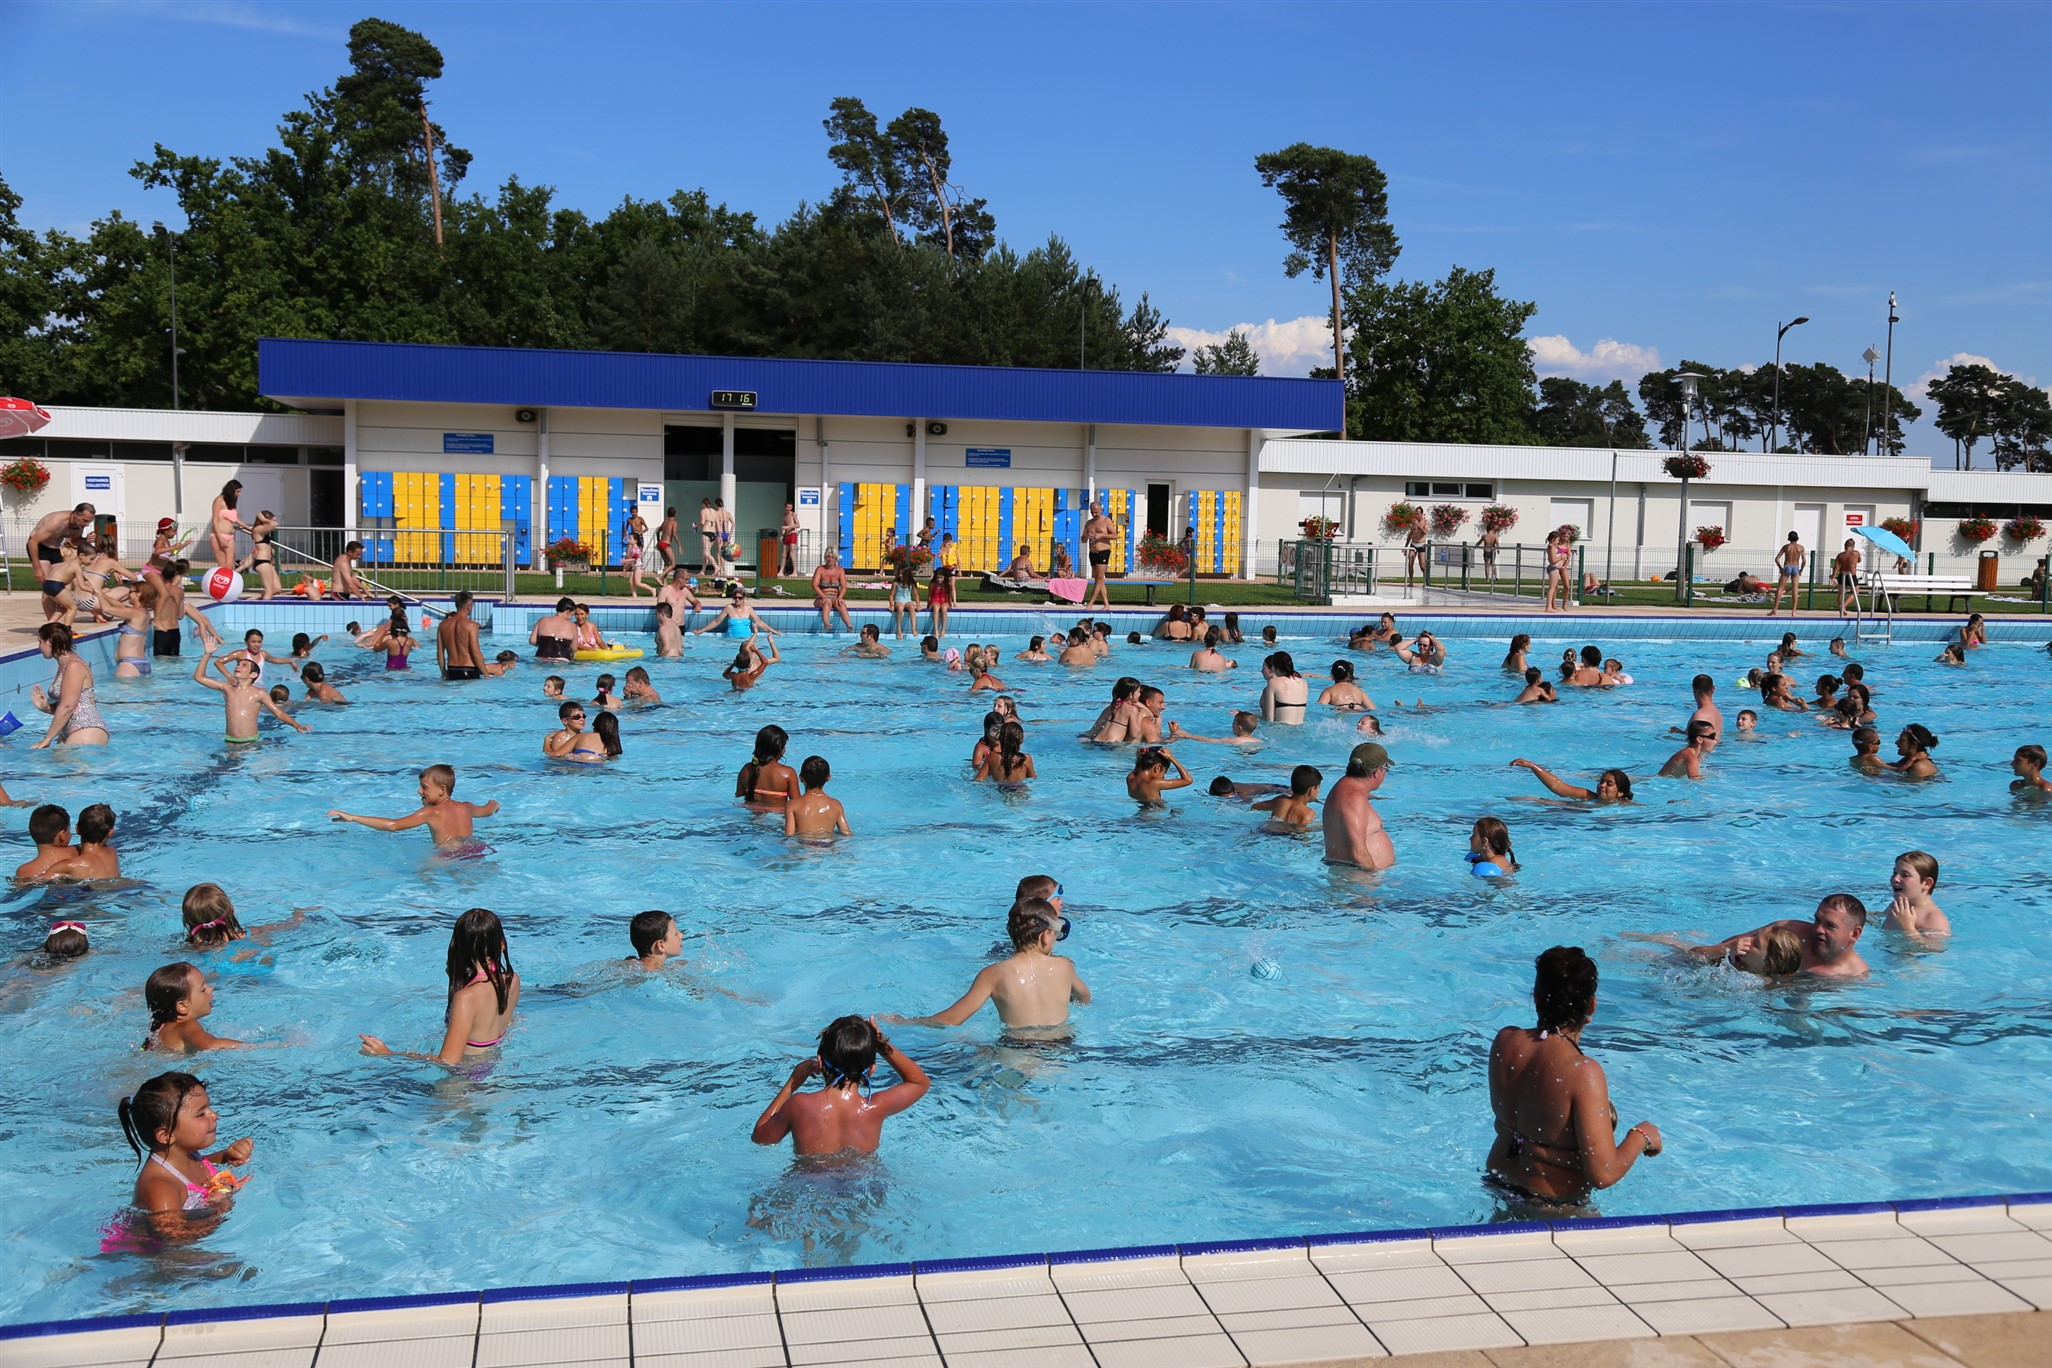 Ouverture piscine plein air intercommunale de bischwiller for Ouverture piscine